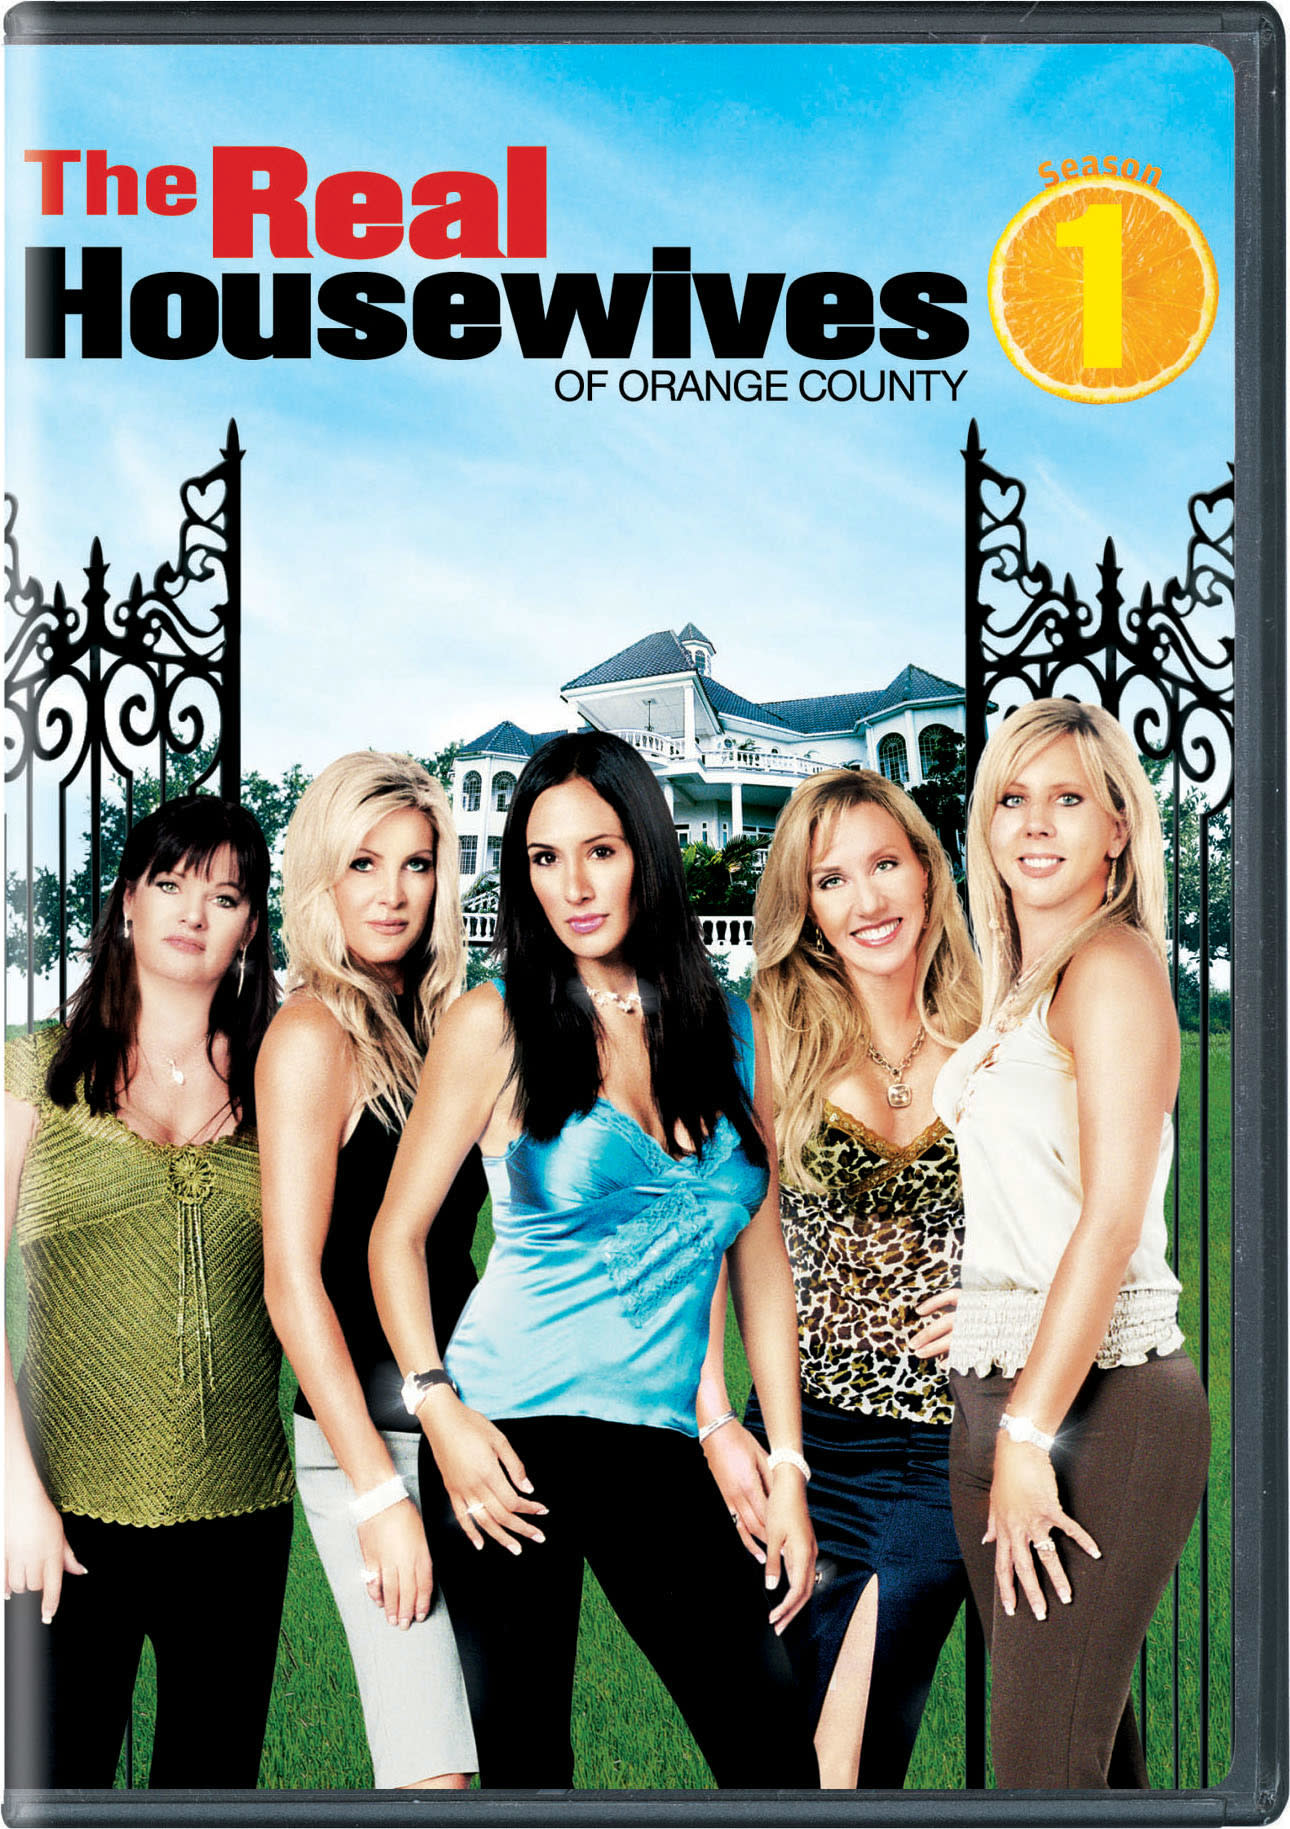 The Real Housewives of Orange County: Season 1 [DVD]